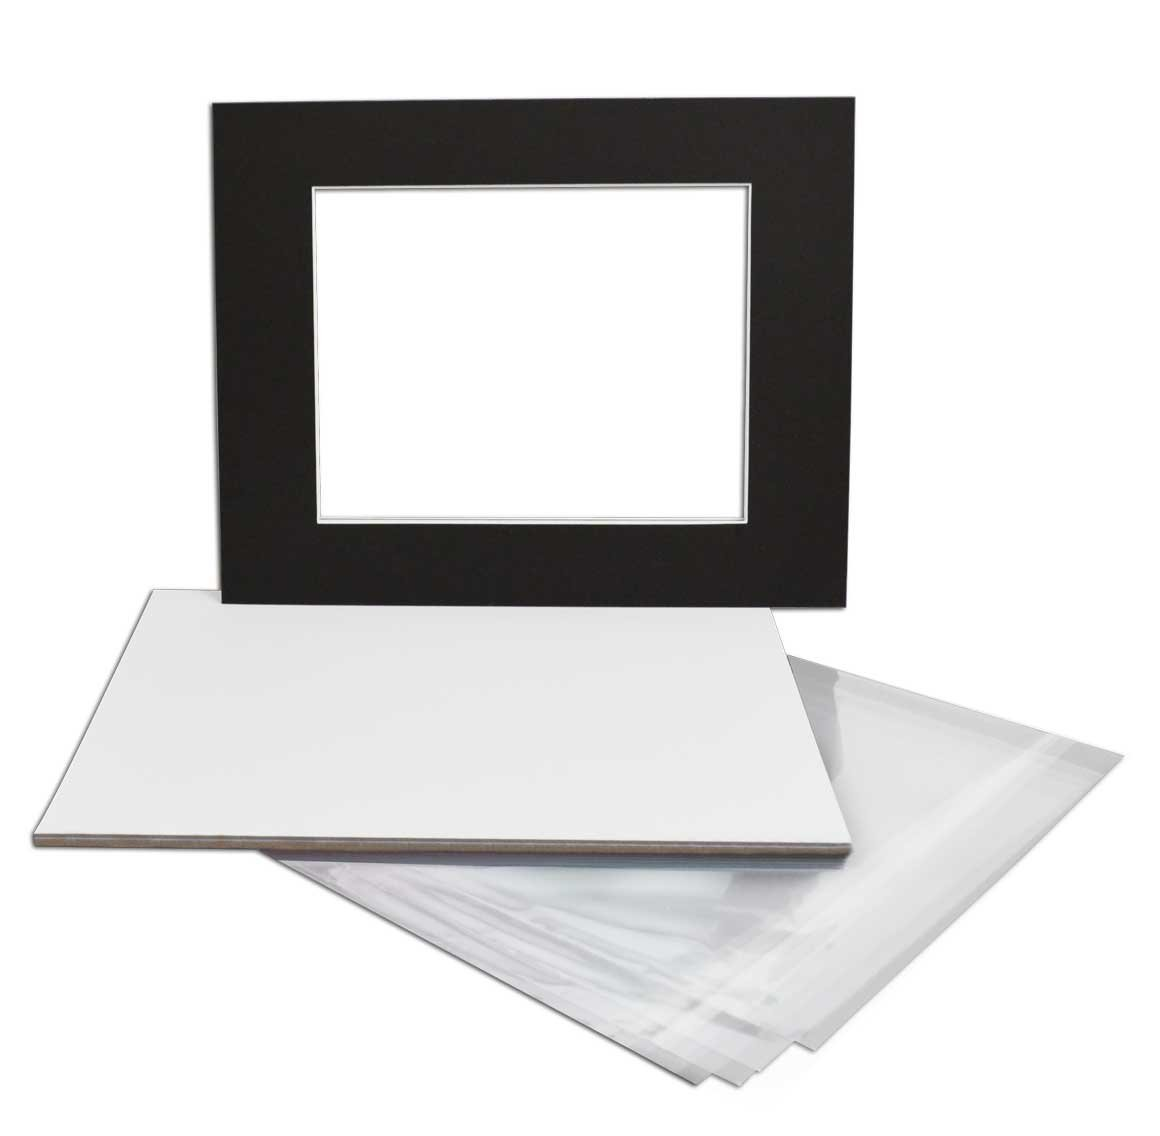 Golden State Art, Pack of 100, Acid-Free 16 3/8x 20 1/8 inches Crystal Clear Sleeves Storage Bags for 16x20 Photo Framing Mats Mattes 100CBags-1620